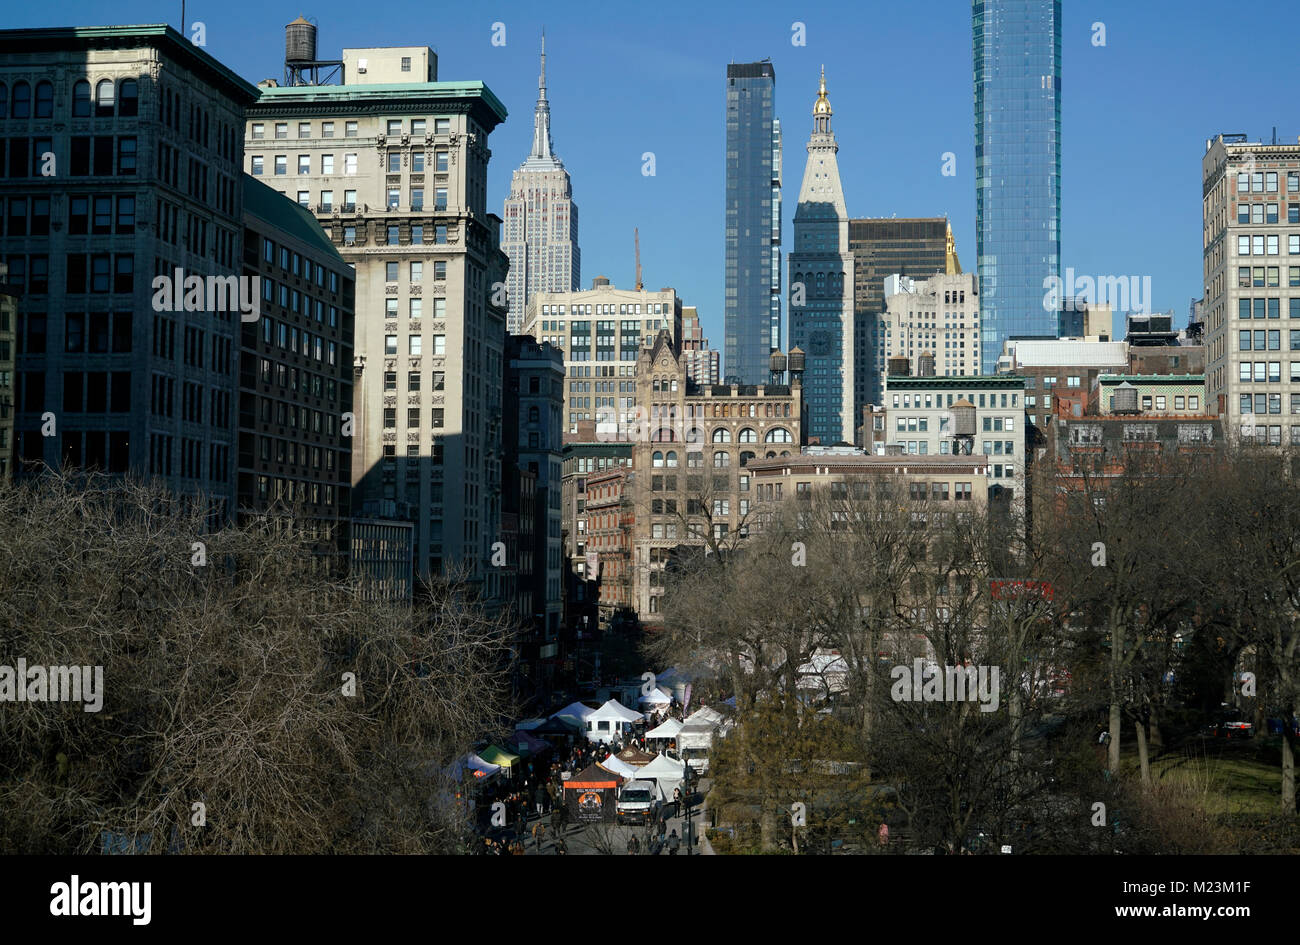 Union Square Park with Midtown Manhattan skyline in the background. Manhattan.New York City.USA - Stock Image